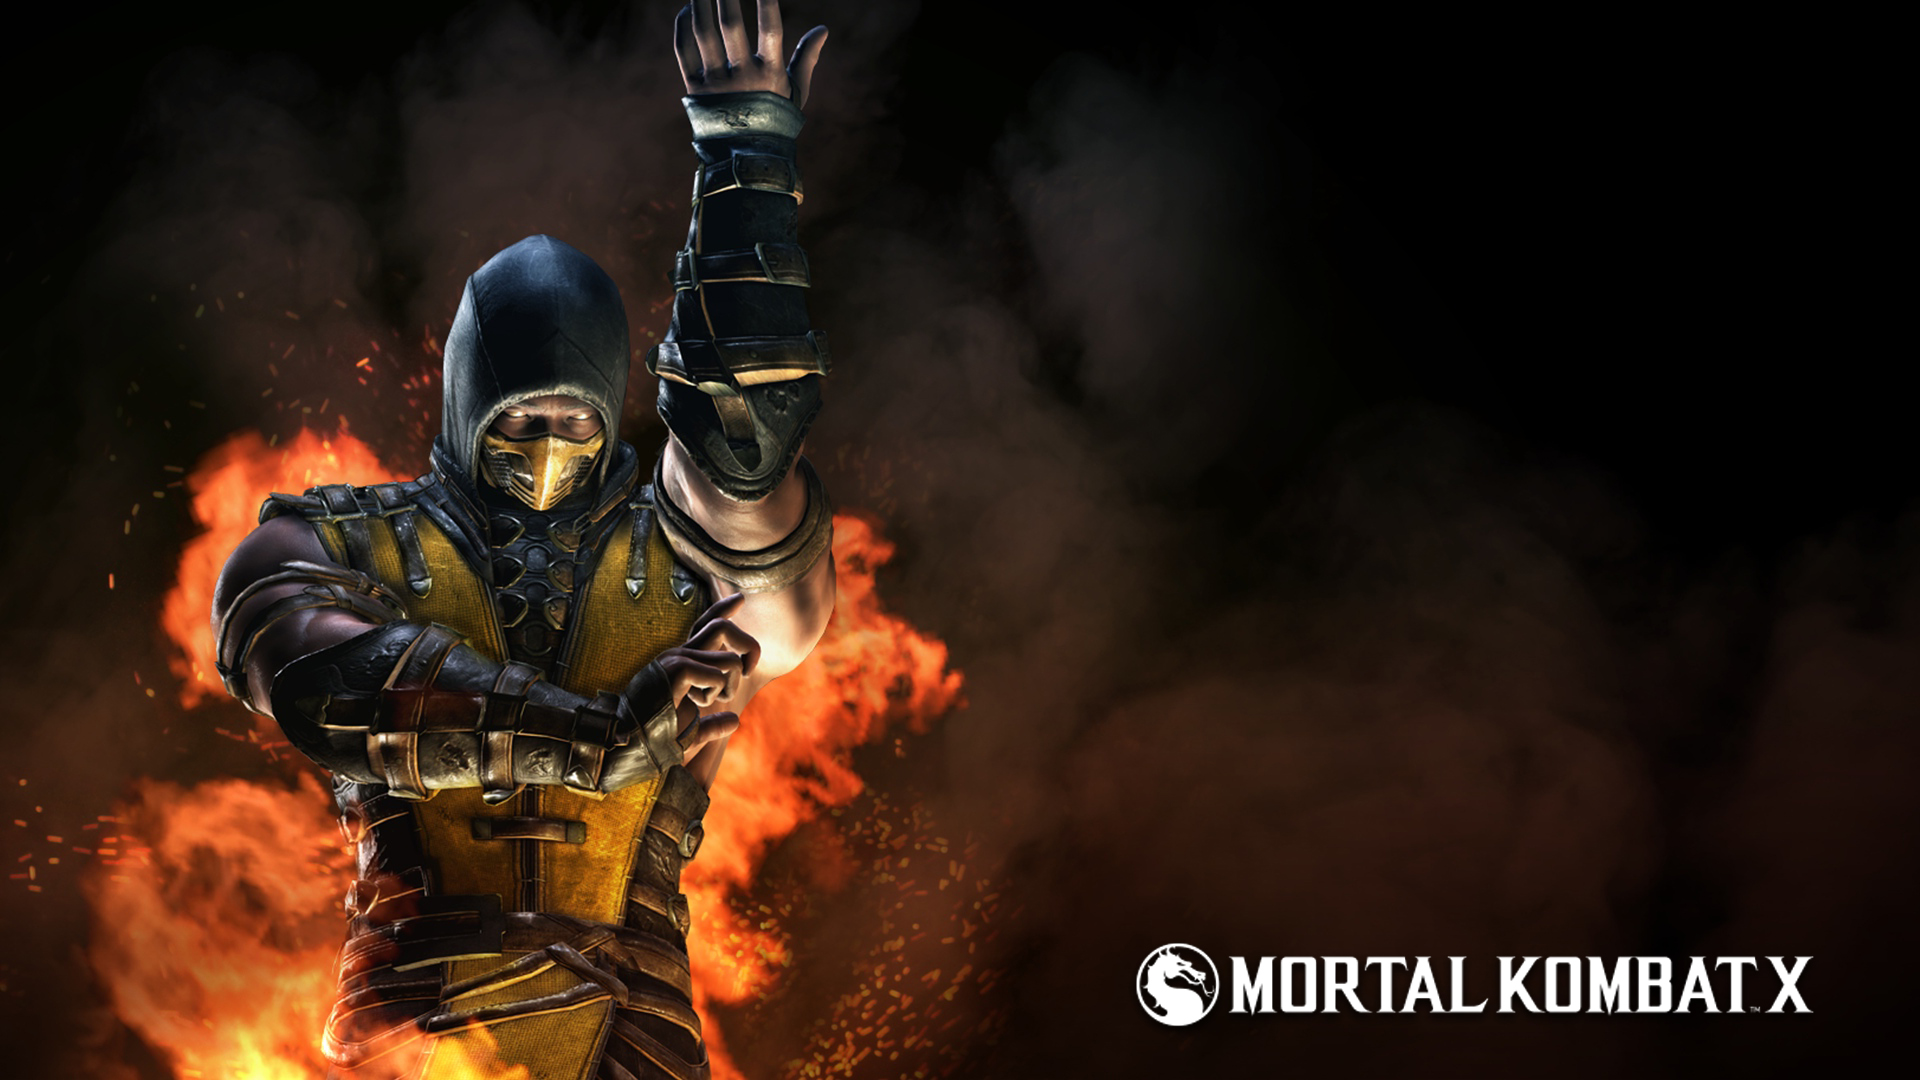 Images Of Scorpion From Mortal Kombat For Wallpaper: Pictures Of Scorpion From Mortal Kombat In Action Figure